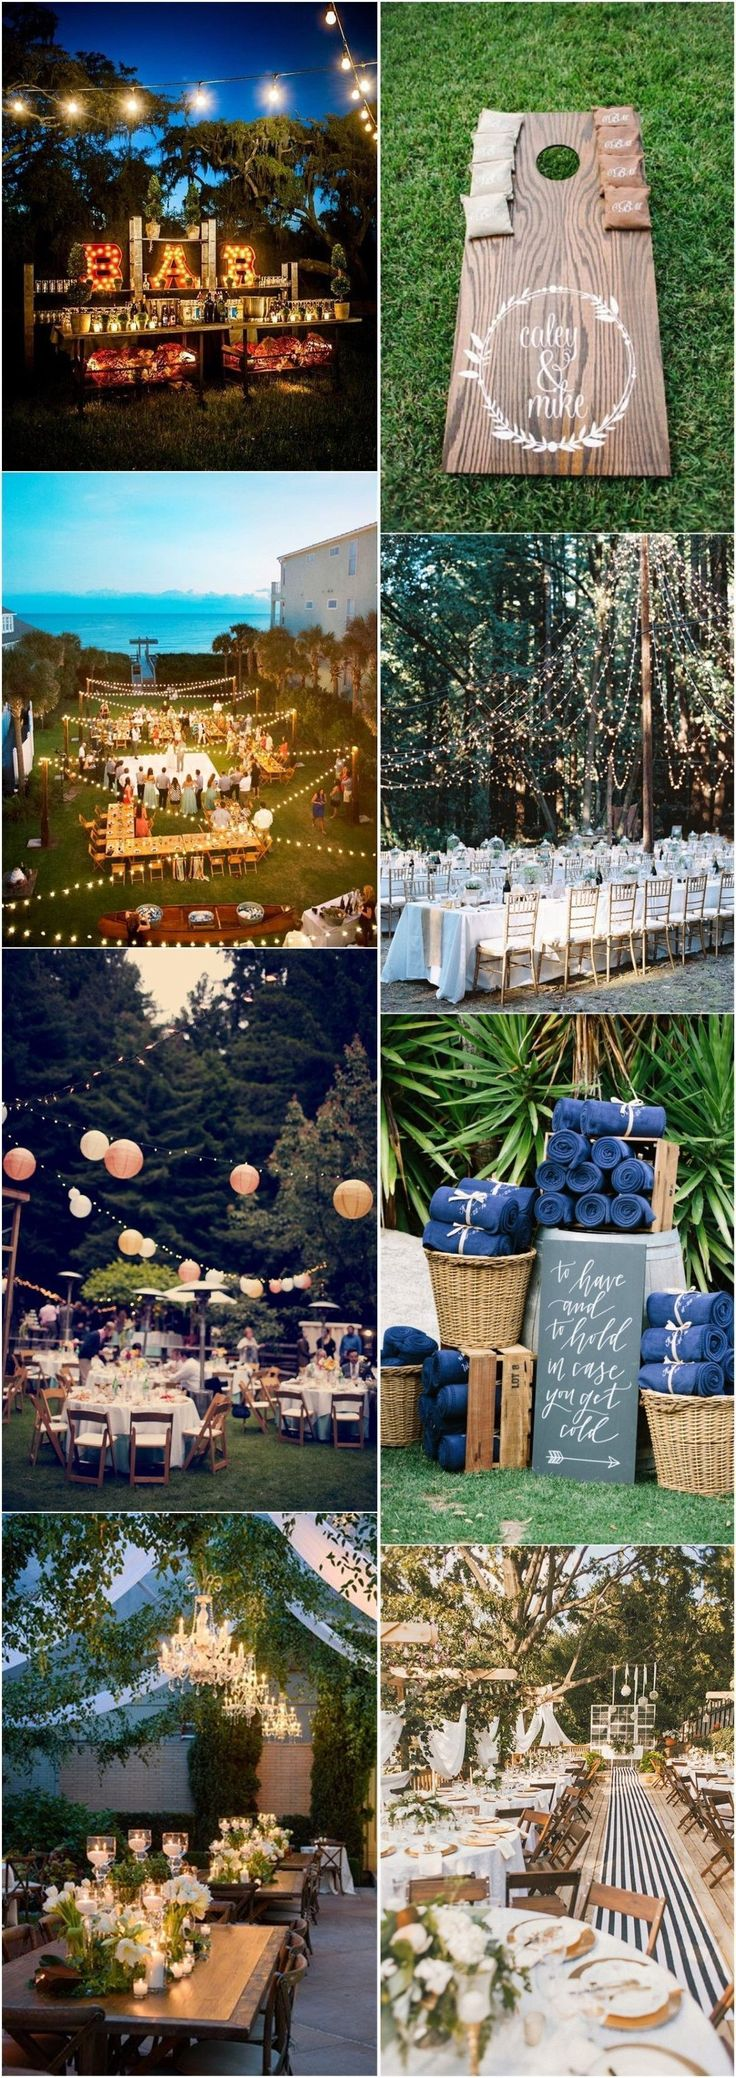 Wedding Decorations » 22 Rustic Backyard Wedding Decoration Ideas on A Budget » ❤️ More: http://www.weddinginclude.com/2017/08/rustic-backyard-wedding-decoration-ideas-on-a-budget/ #budgetweddingdecorations #weddingplanningonabudget #weddingdecoration